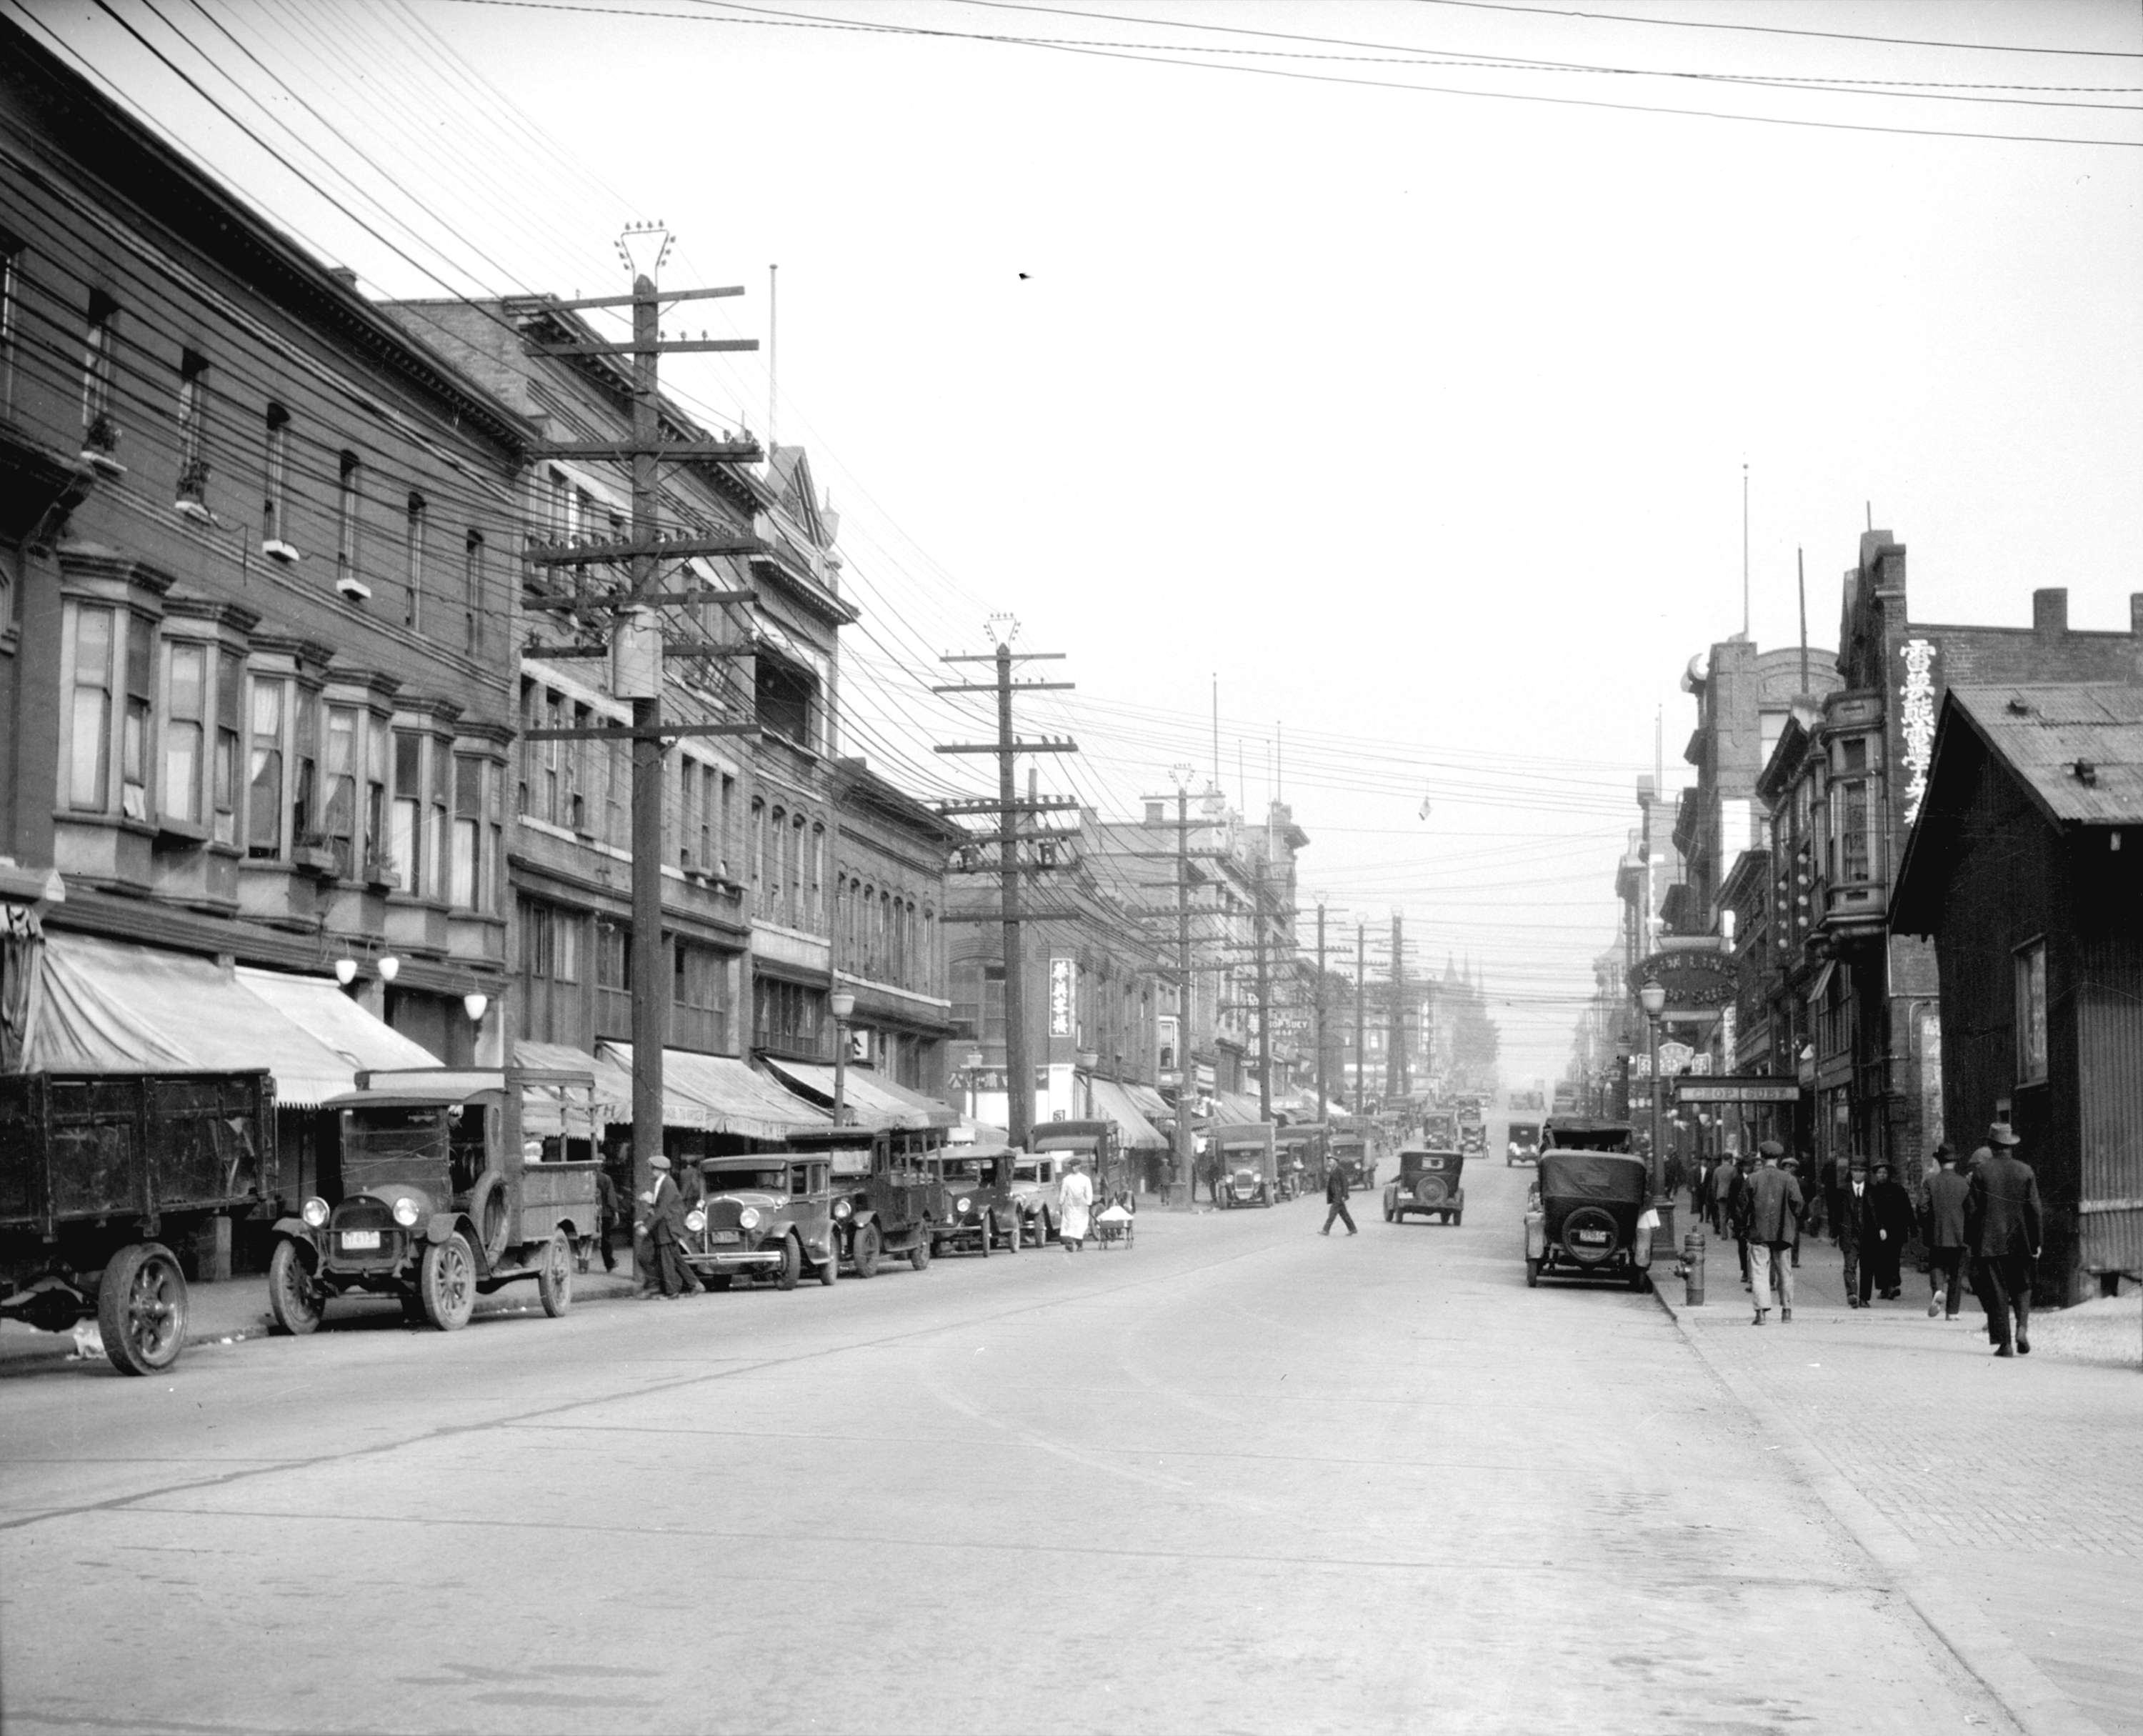 1200px version of Vancouver's Chinatown, 1928